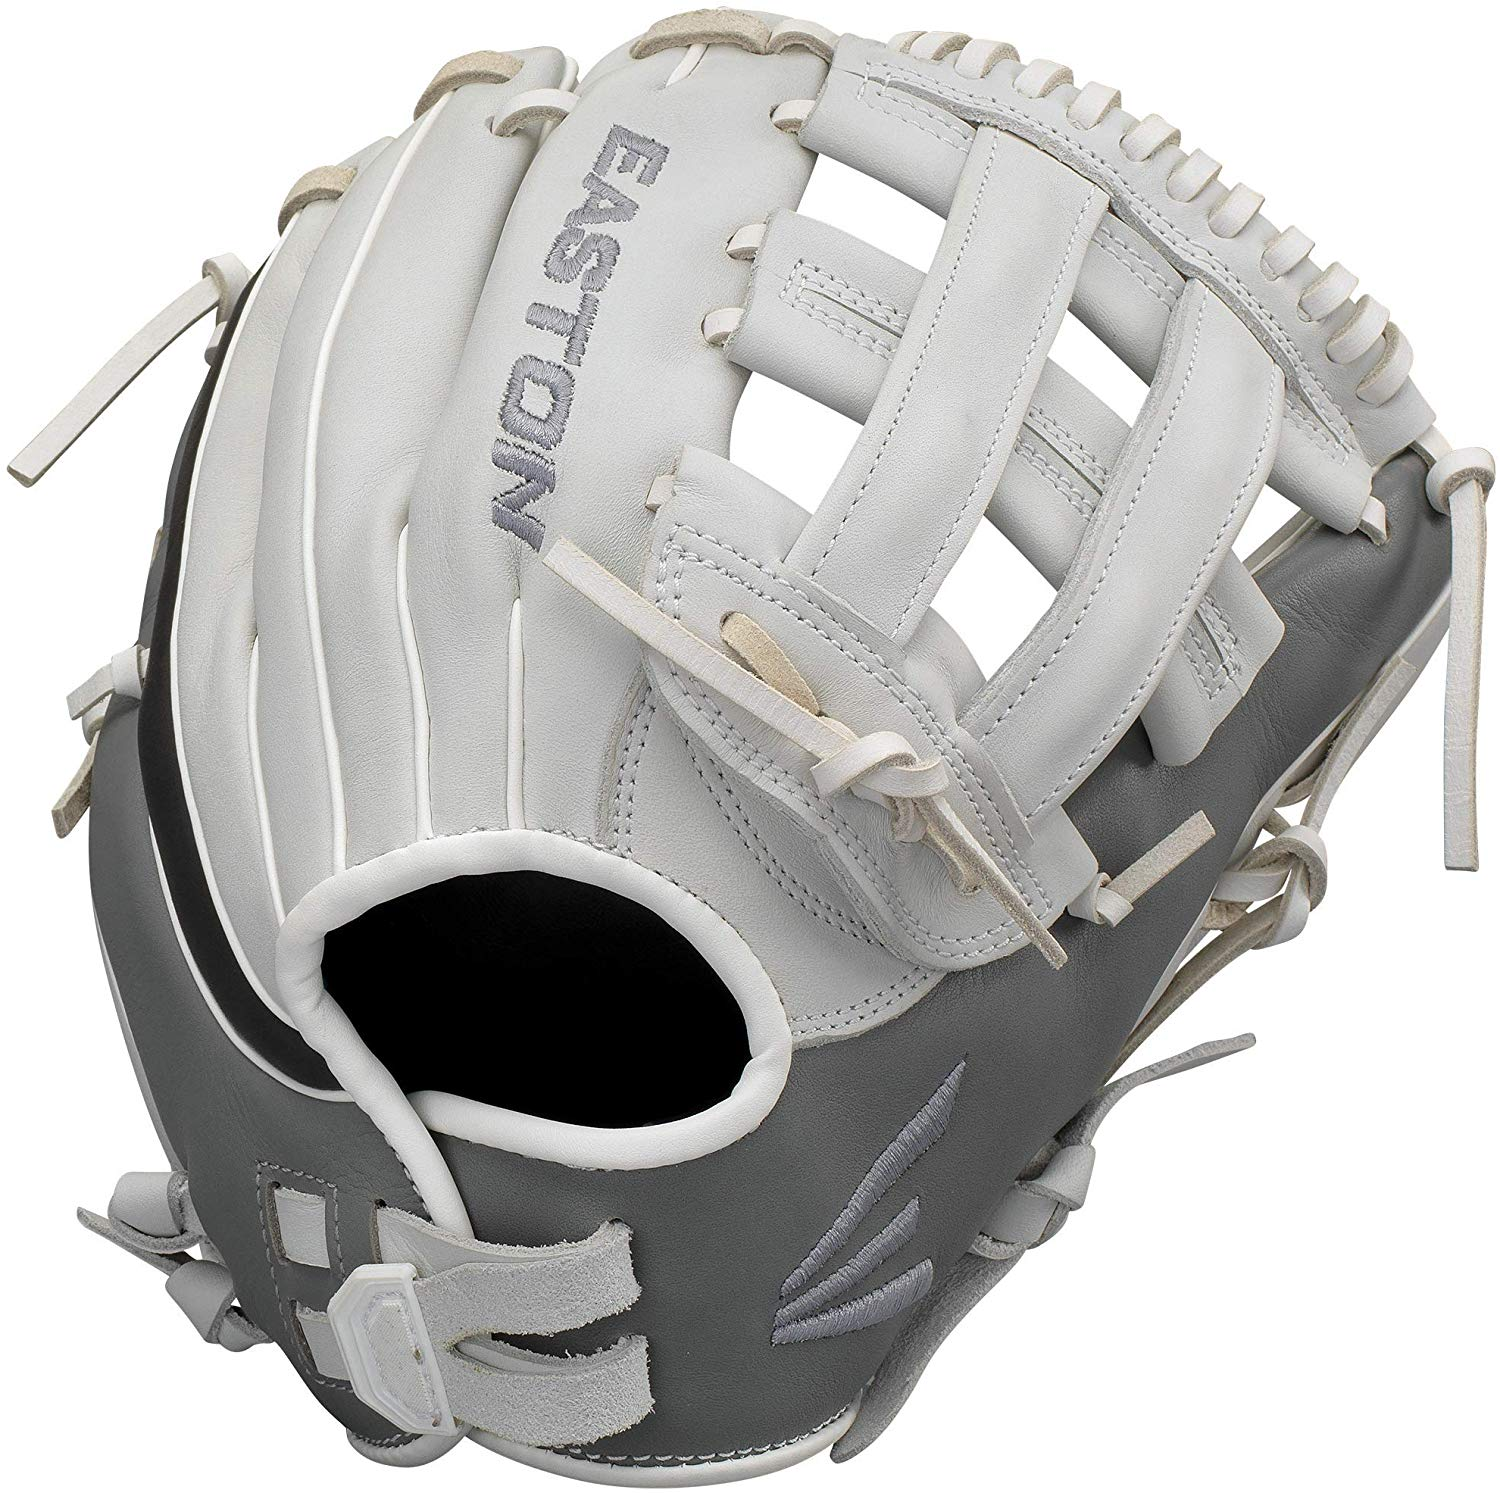 easton-ghost-fastpitch-softball-glove-12-75-right-hand-throw GH1276FP-RightHandThrow Easton 628412270035 Premium Steer USA leather Quantum Closure SystemTM provides adjustable hand opening